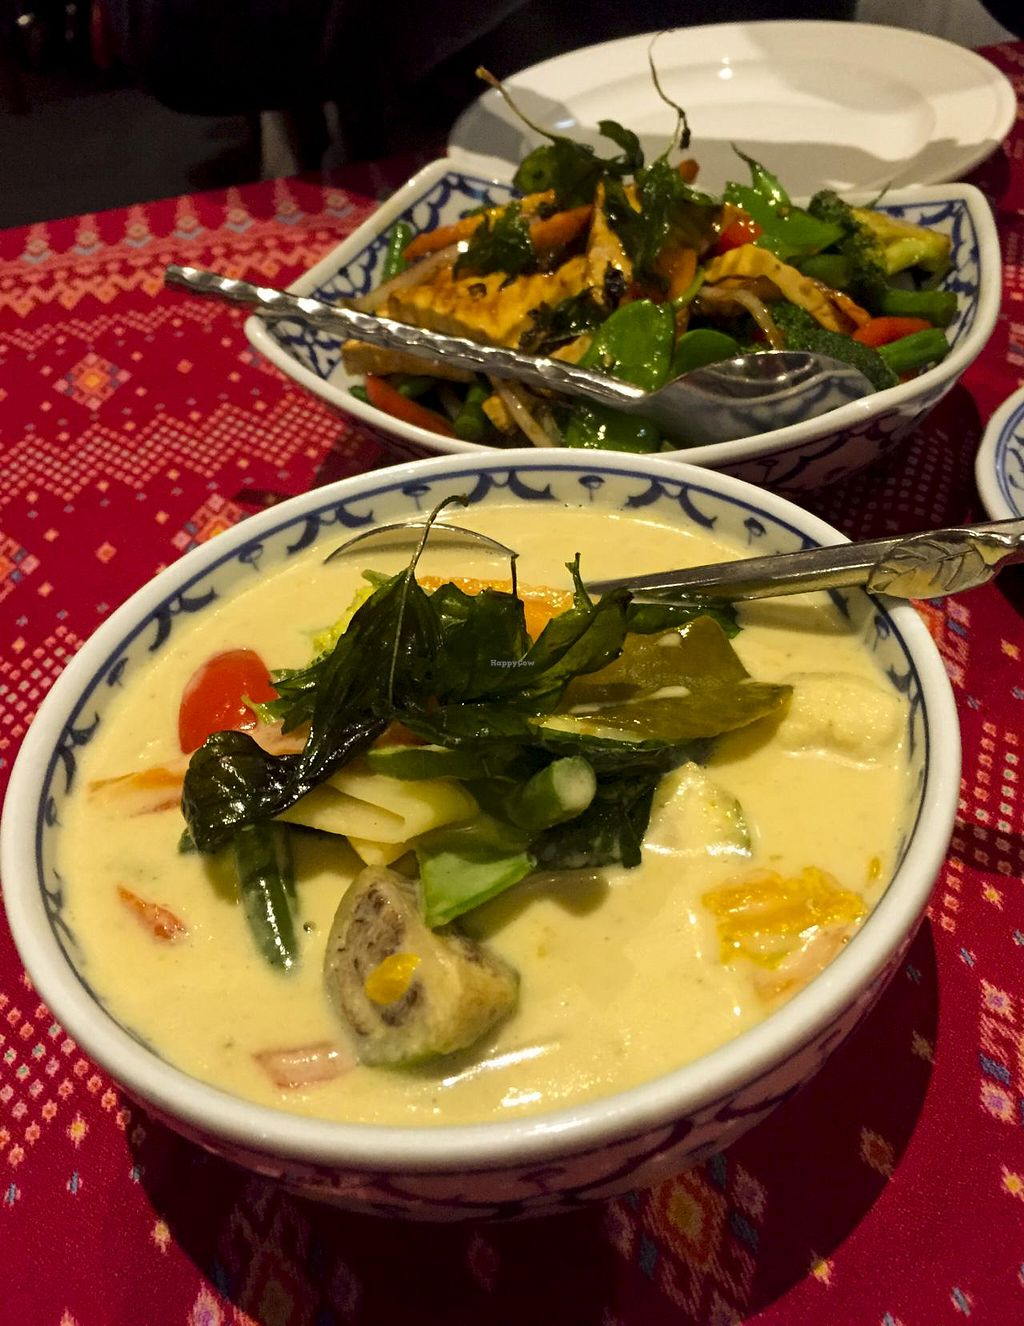 """Photo of Vanilla Orchid  by <a href=""""/members/profile/karlaess"""">karlaess</a> <br/>Green Curry (front) & Pad Grapow (back) <br/> July 24, 2015  - <a href='/contact/abuse/image/60889/110800'>Report</a>"""